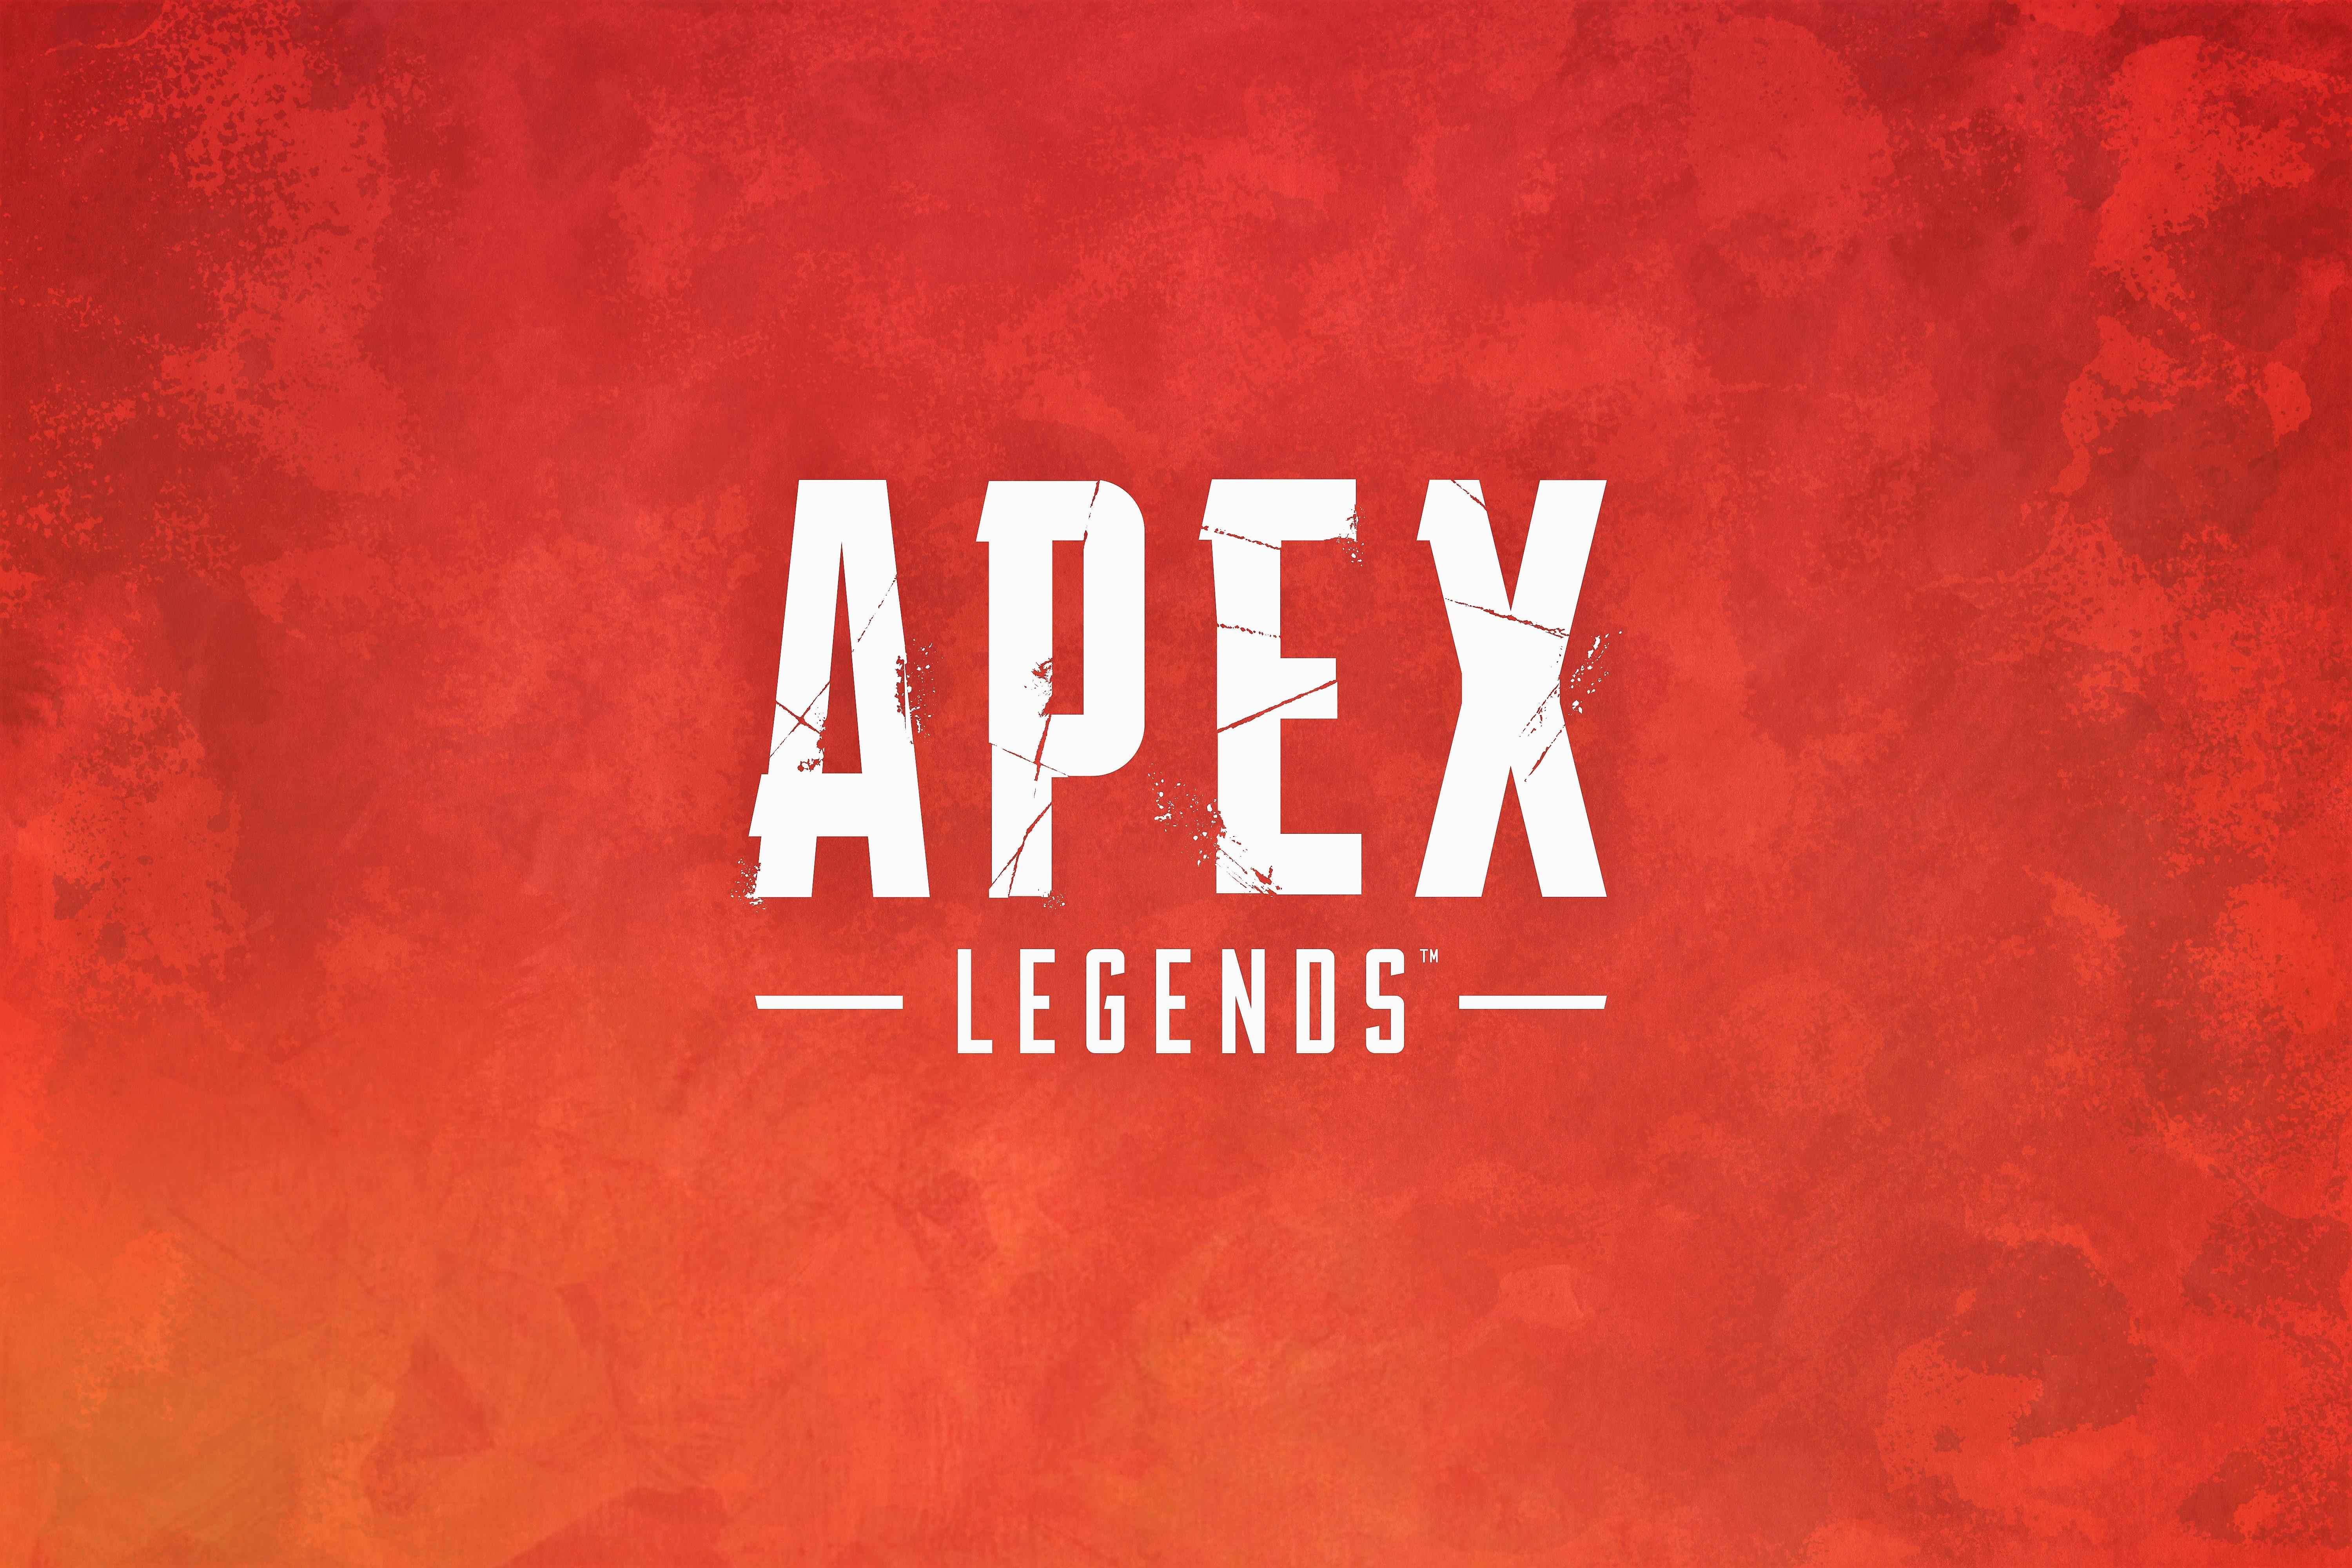 APEX Legends Hands-On: Battle Royale la alt nivel